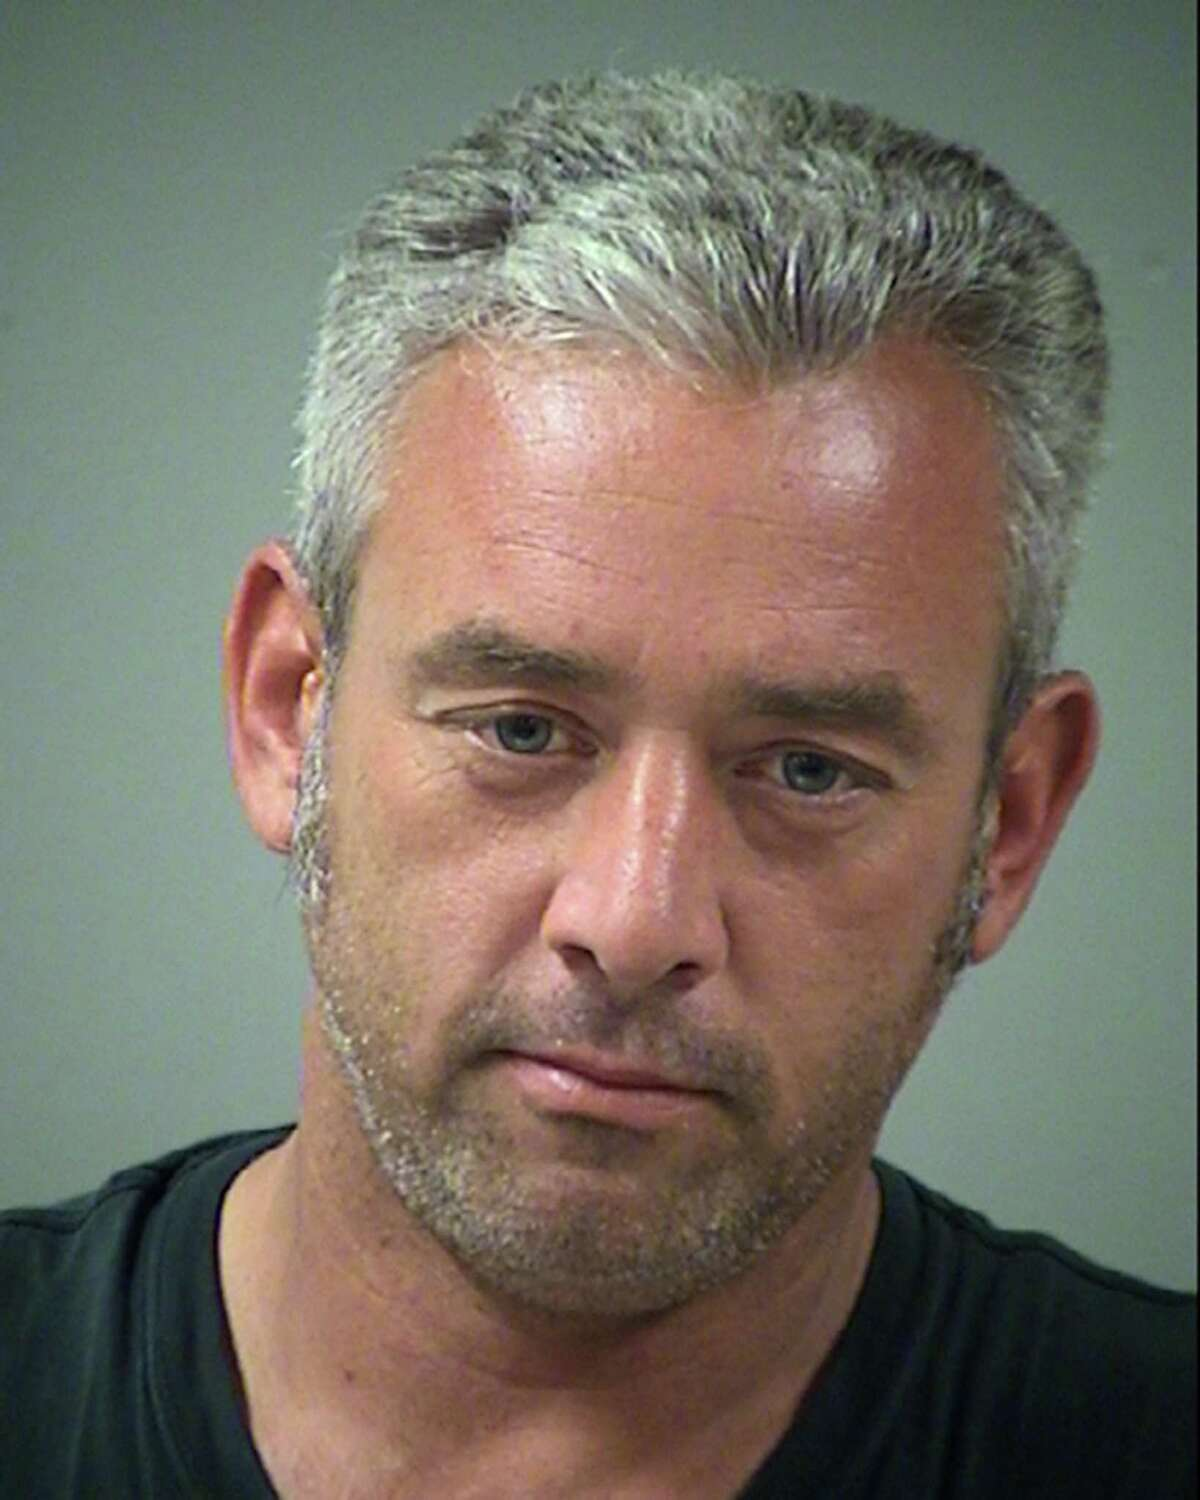 Antone Shannon, 38, is accused of stealing Miss Helen, a small gray horn shark, from the San Antonio Aquarium. He faces a state felony charge for theft of property valued at between $2,500 and $30,000.